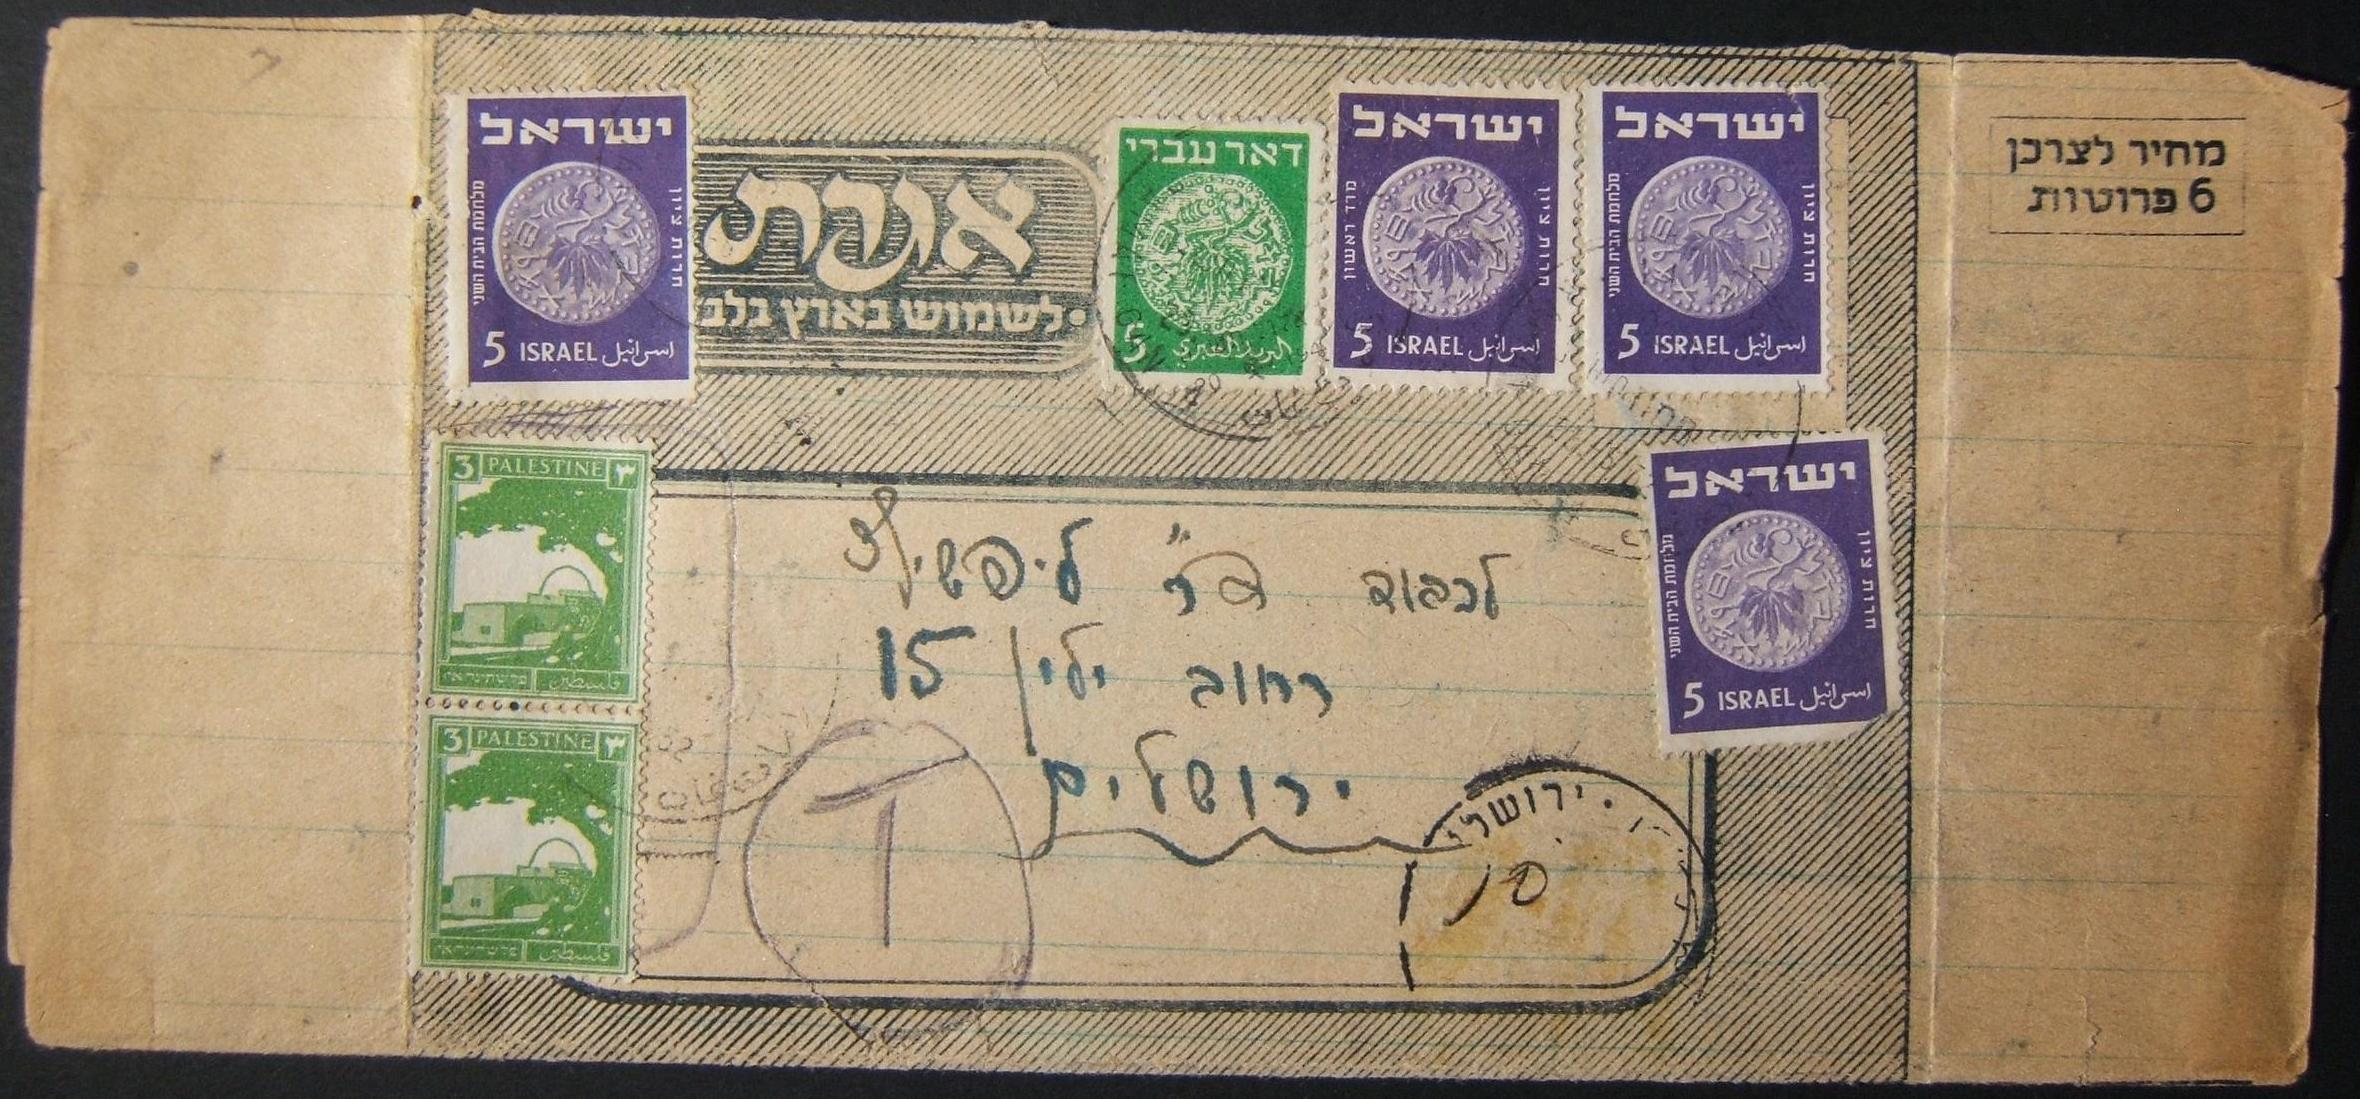 29-6-1952 Ramat Gan to Jerusalem falsely franked & under-franked mail, taxed too little